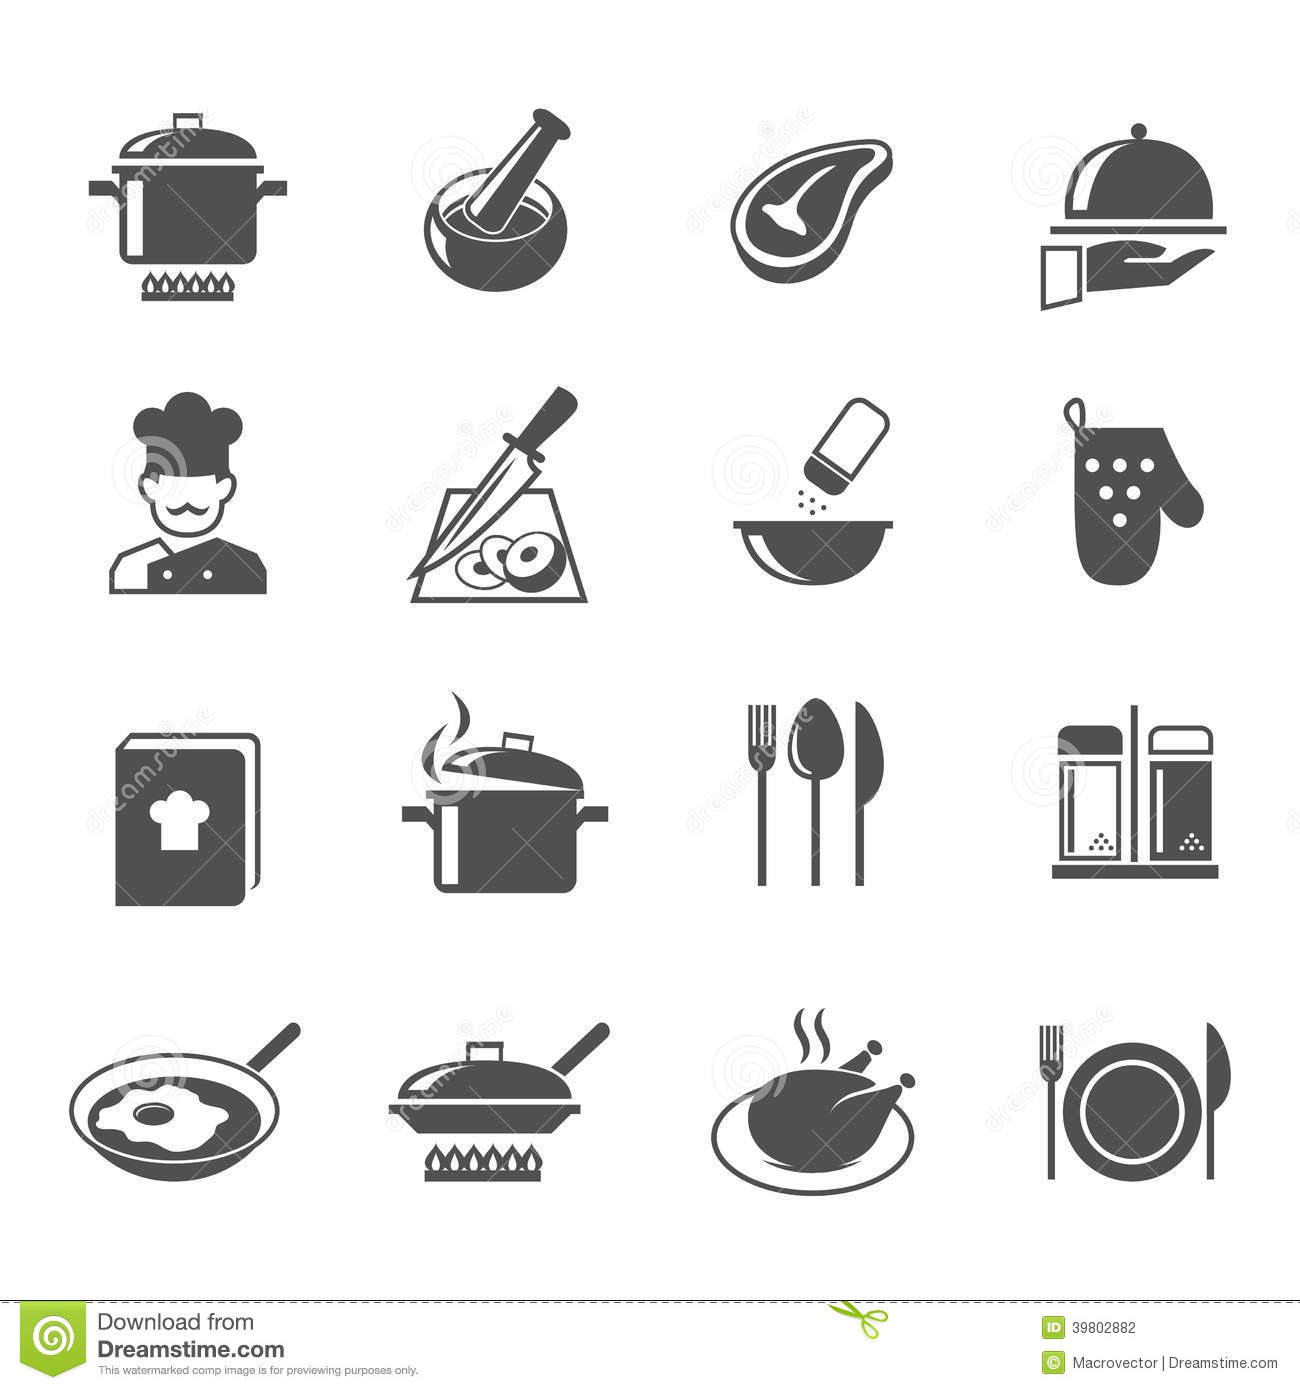 Set Of Black Kitchen Icons Utensils Stock Vector: Cooking Icons Set Stock Vector. Illustration Of Chef